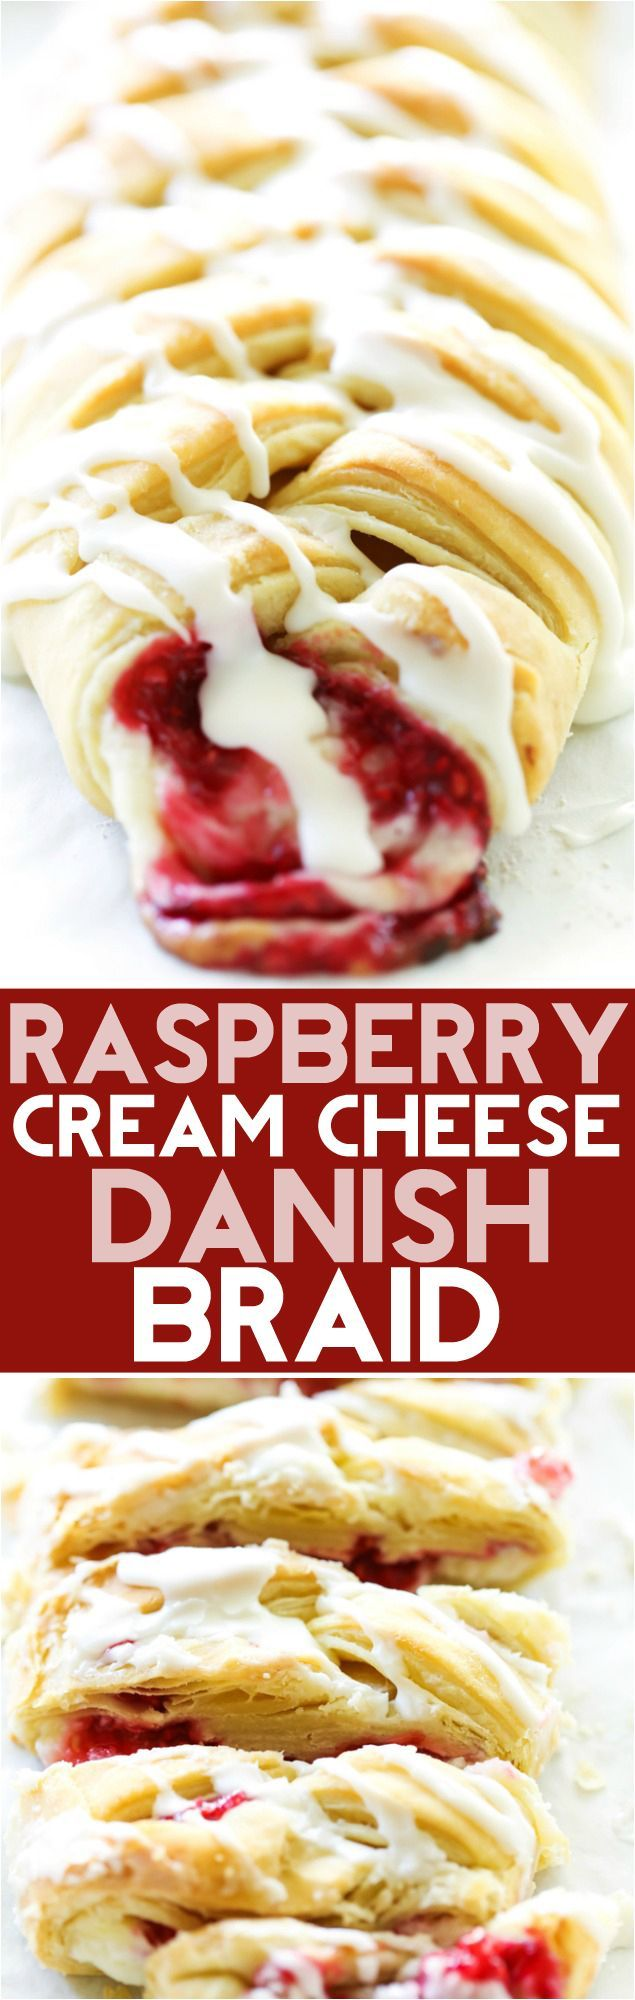 This Raspberry Cream Cheese Danish Braid is SO simple and tastes incredible! The puff pastry just melts in your mouth and is perfectly paired with a cream cheese filling and a delicious raspberry sauce.